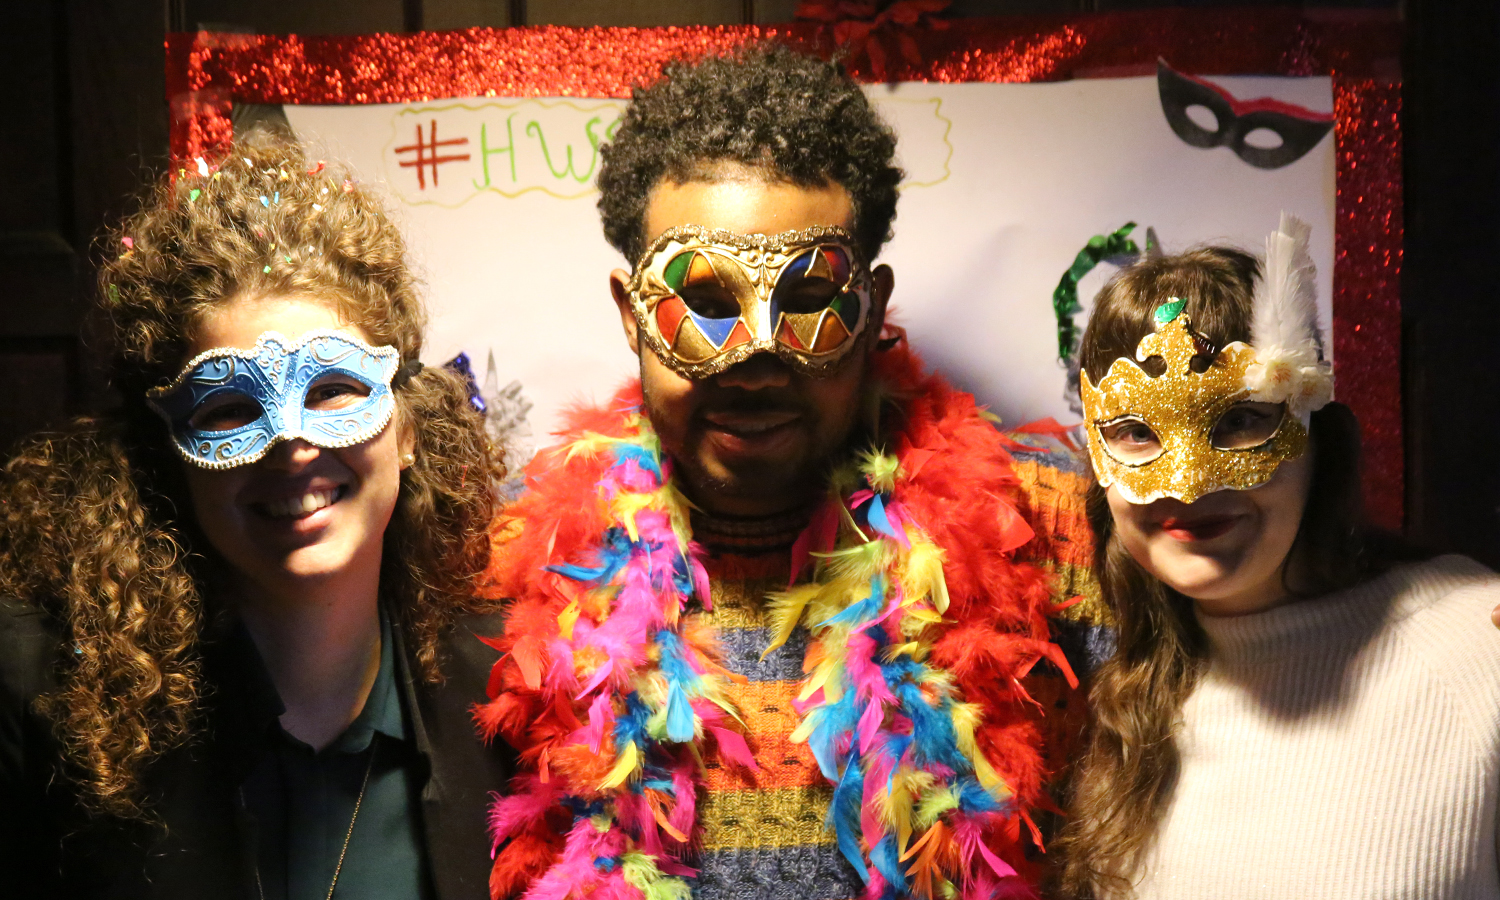 Italian Fulbright Teaching Fellow Alessandra Bottacin, Josh Martin '18 and French Fulbright Teaching Fellow Meghann Fedon pose for a photo during the Carnevale celebration in the Bartlett Theatre.